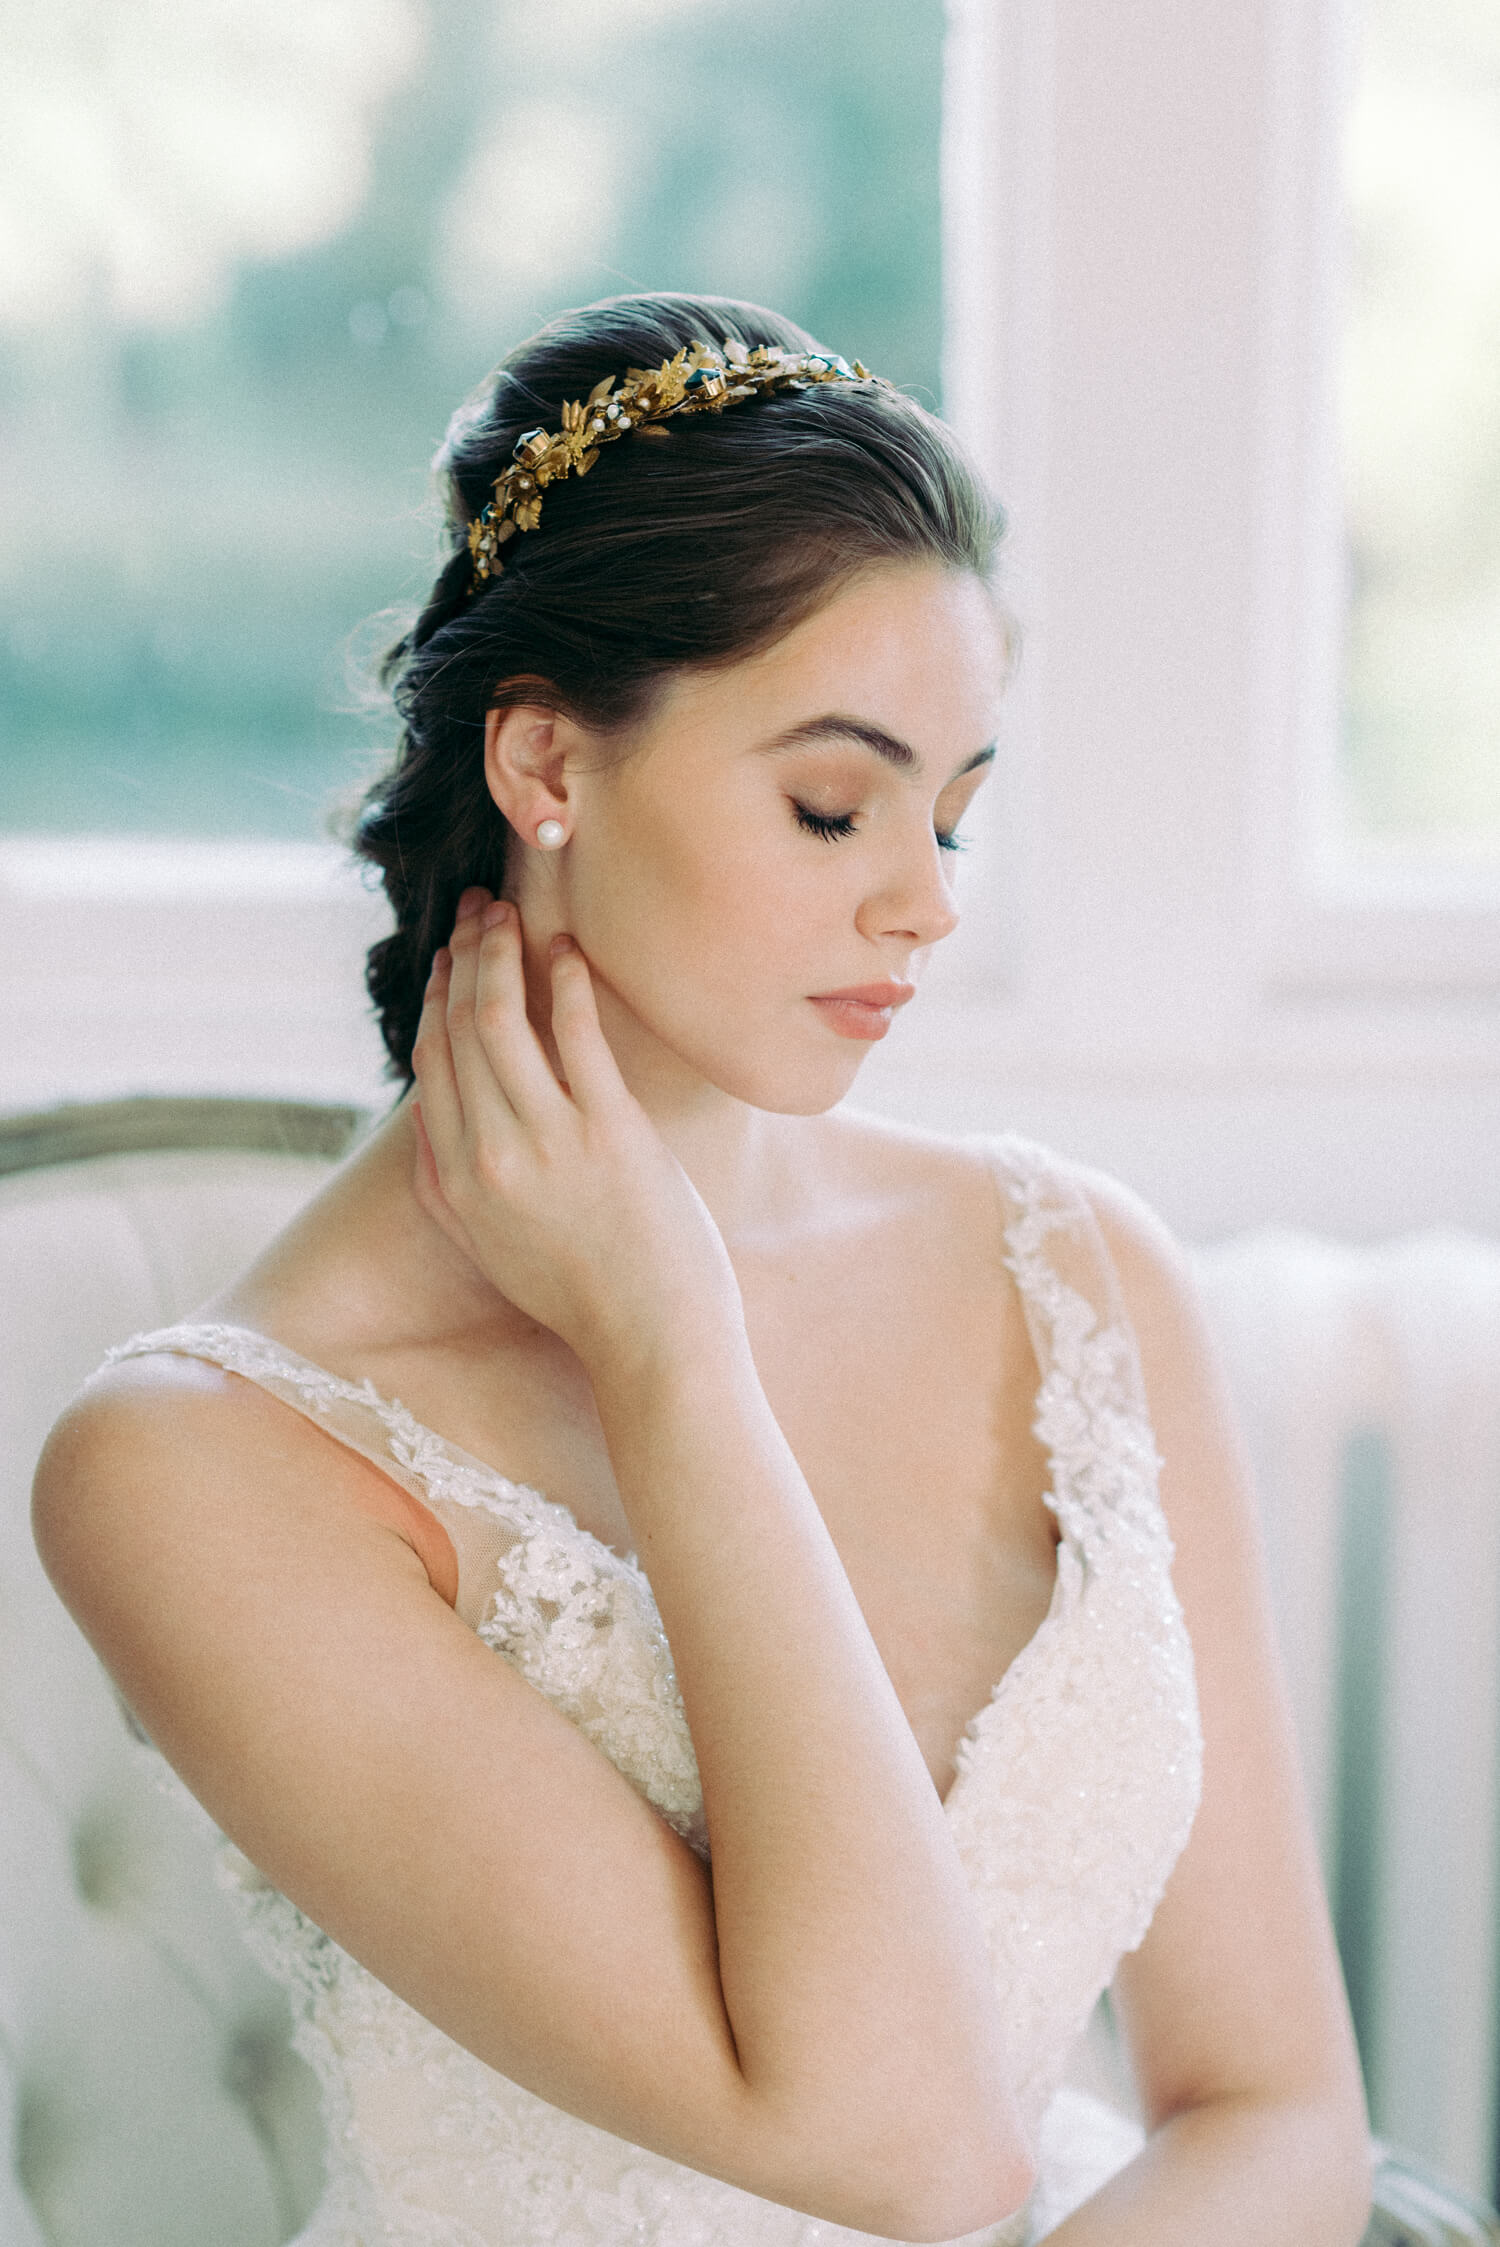 Bridal fresh and natural muted palette make-up look with braided/plaited hair and adorned with a golden brass tiara - Photo by fine art wedding photographer Cristina Ilao www.cristinailao.com